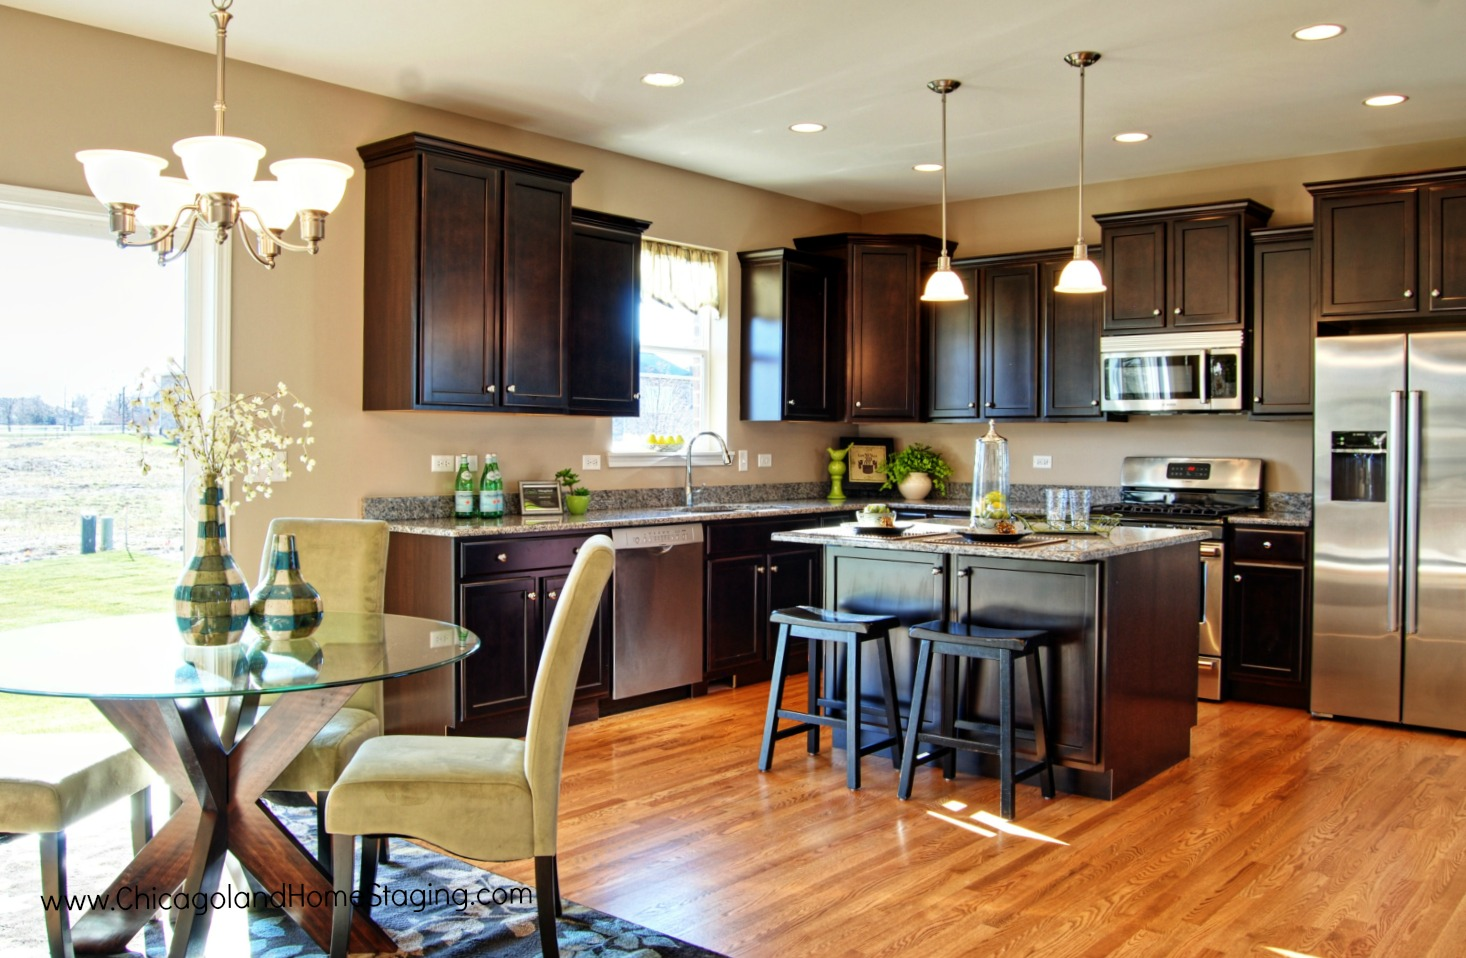 Even Naperville home builders need professional staging